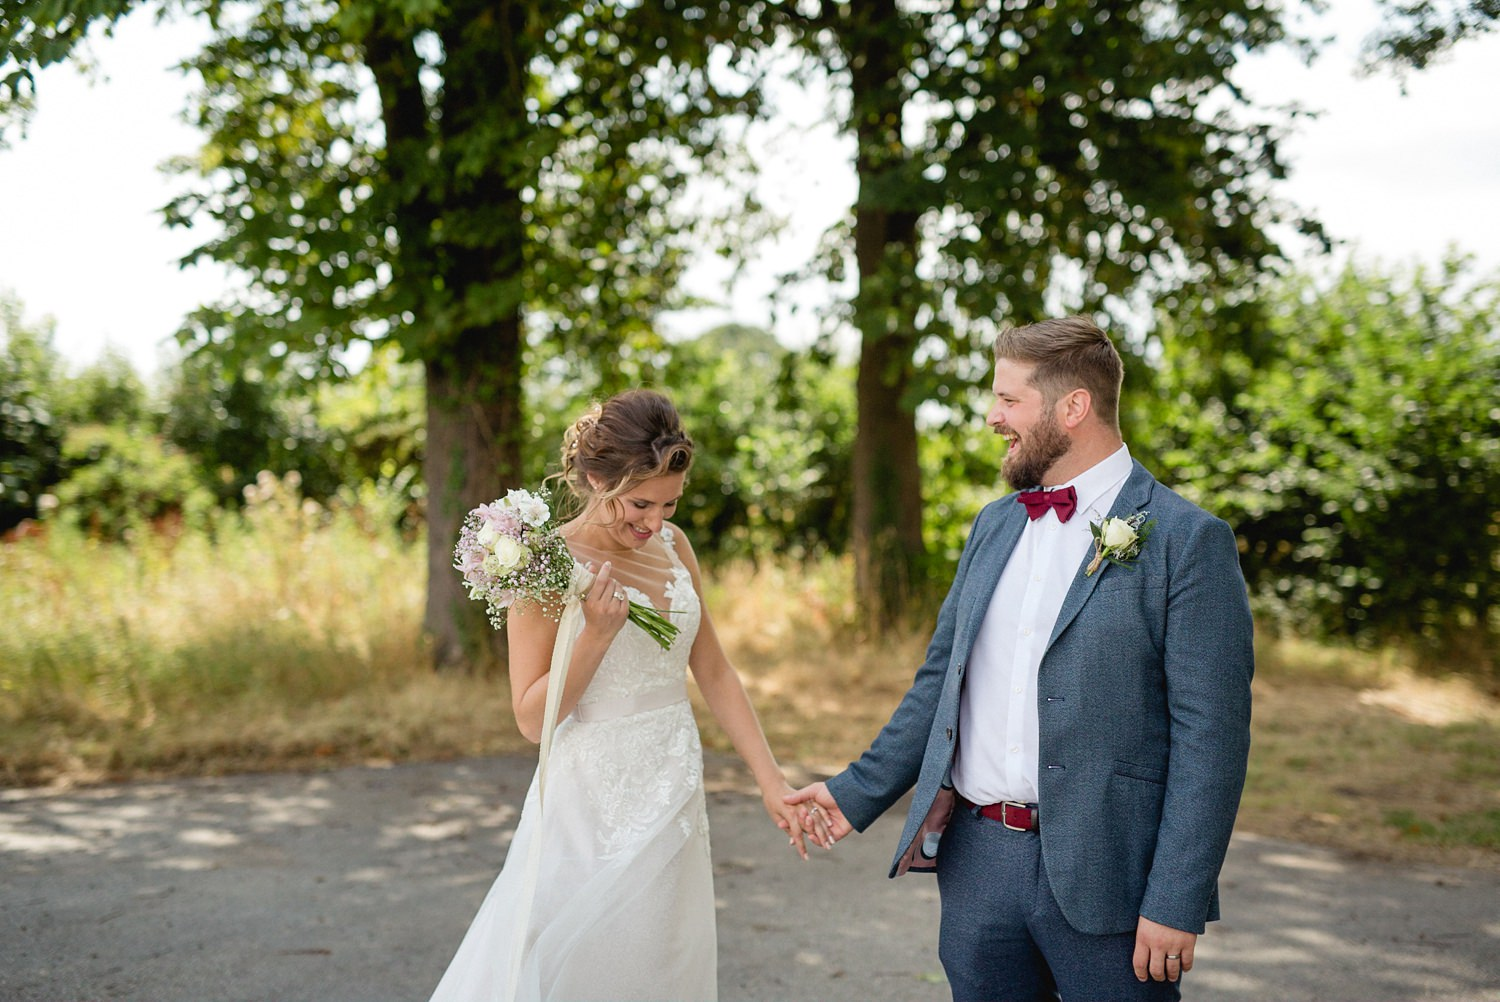 Hornington Manor Outdoor Wedding York | Amy & Chris